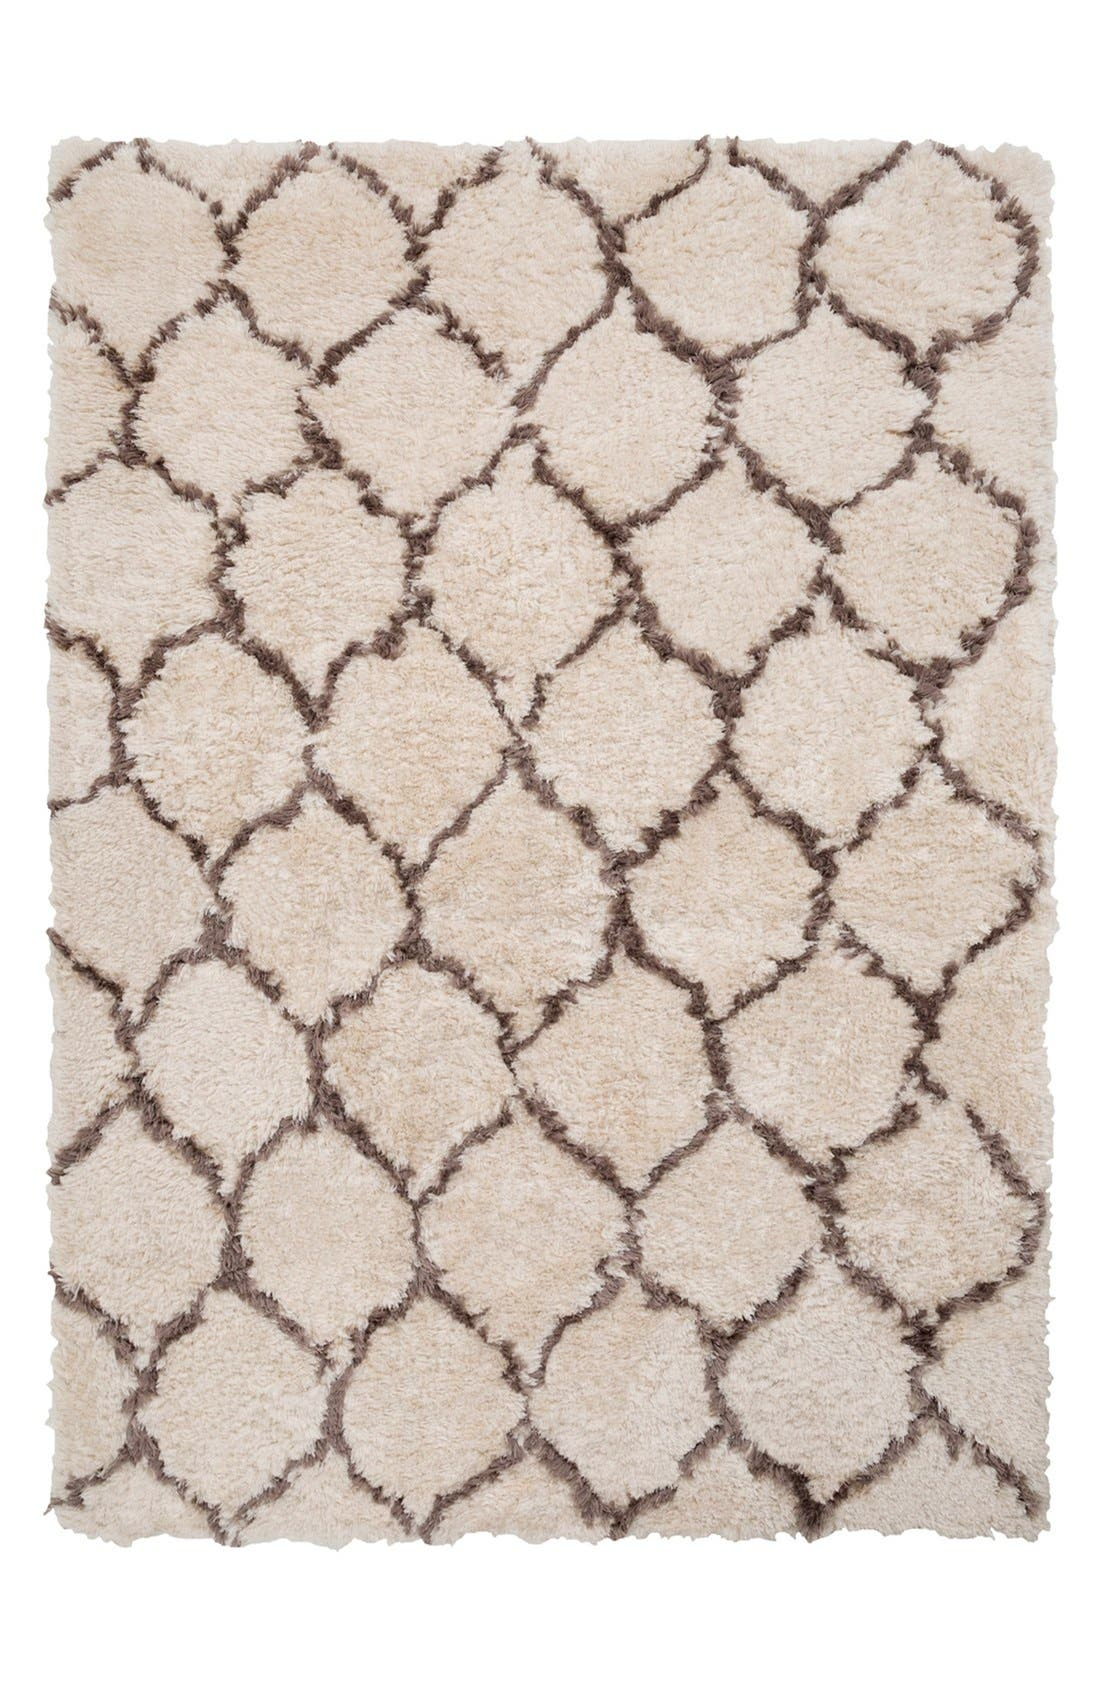 'Scout' Hand Tufted Rug,                         Main,                         color, Light Grey/ Olive